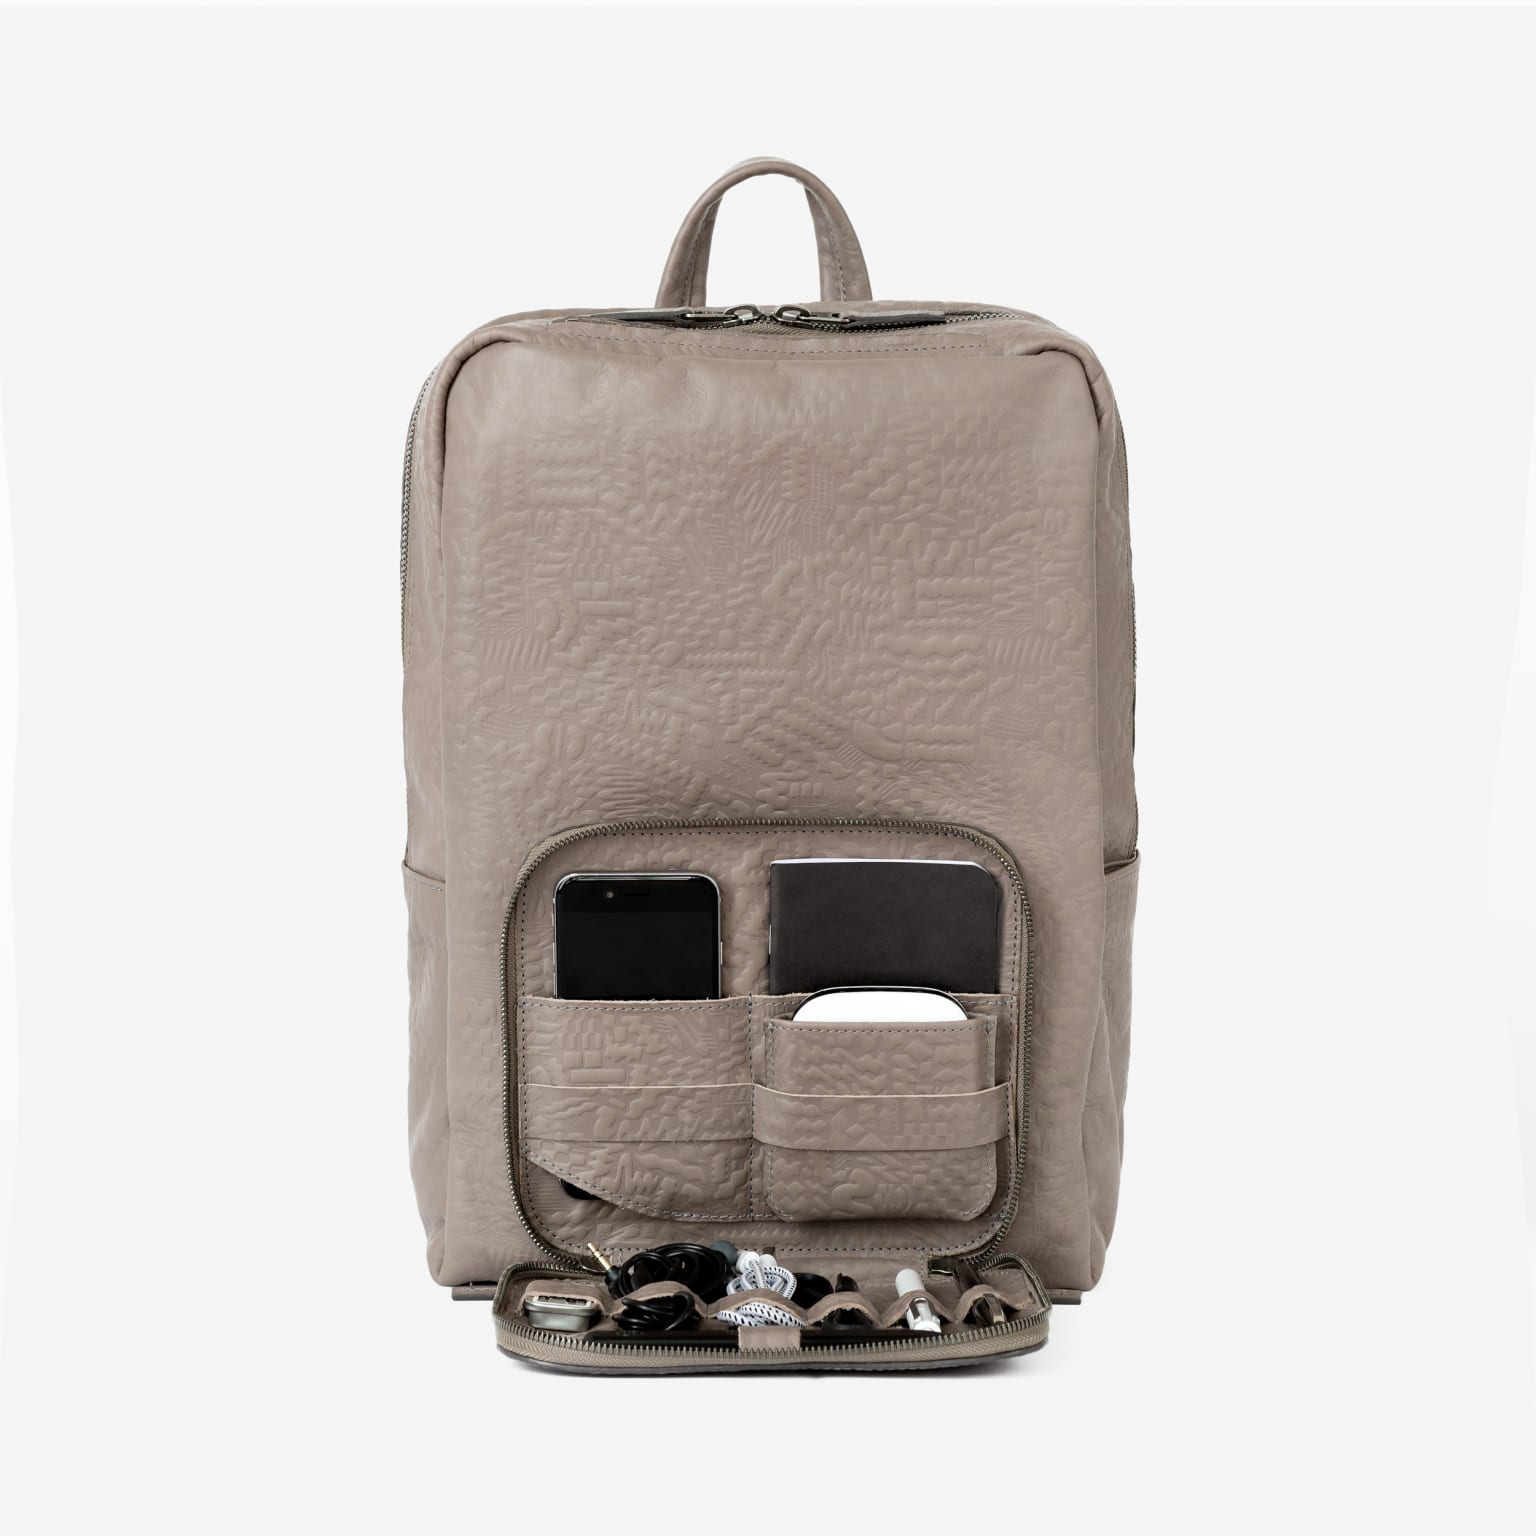 This is Ground / Venture leather backpack Pattern